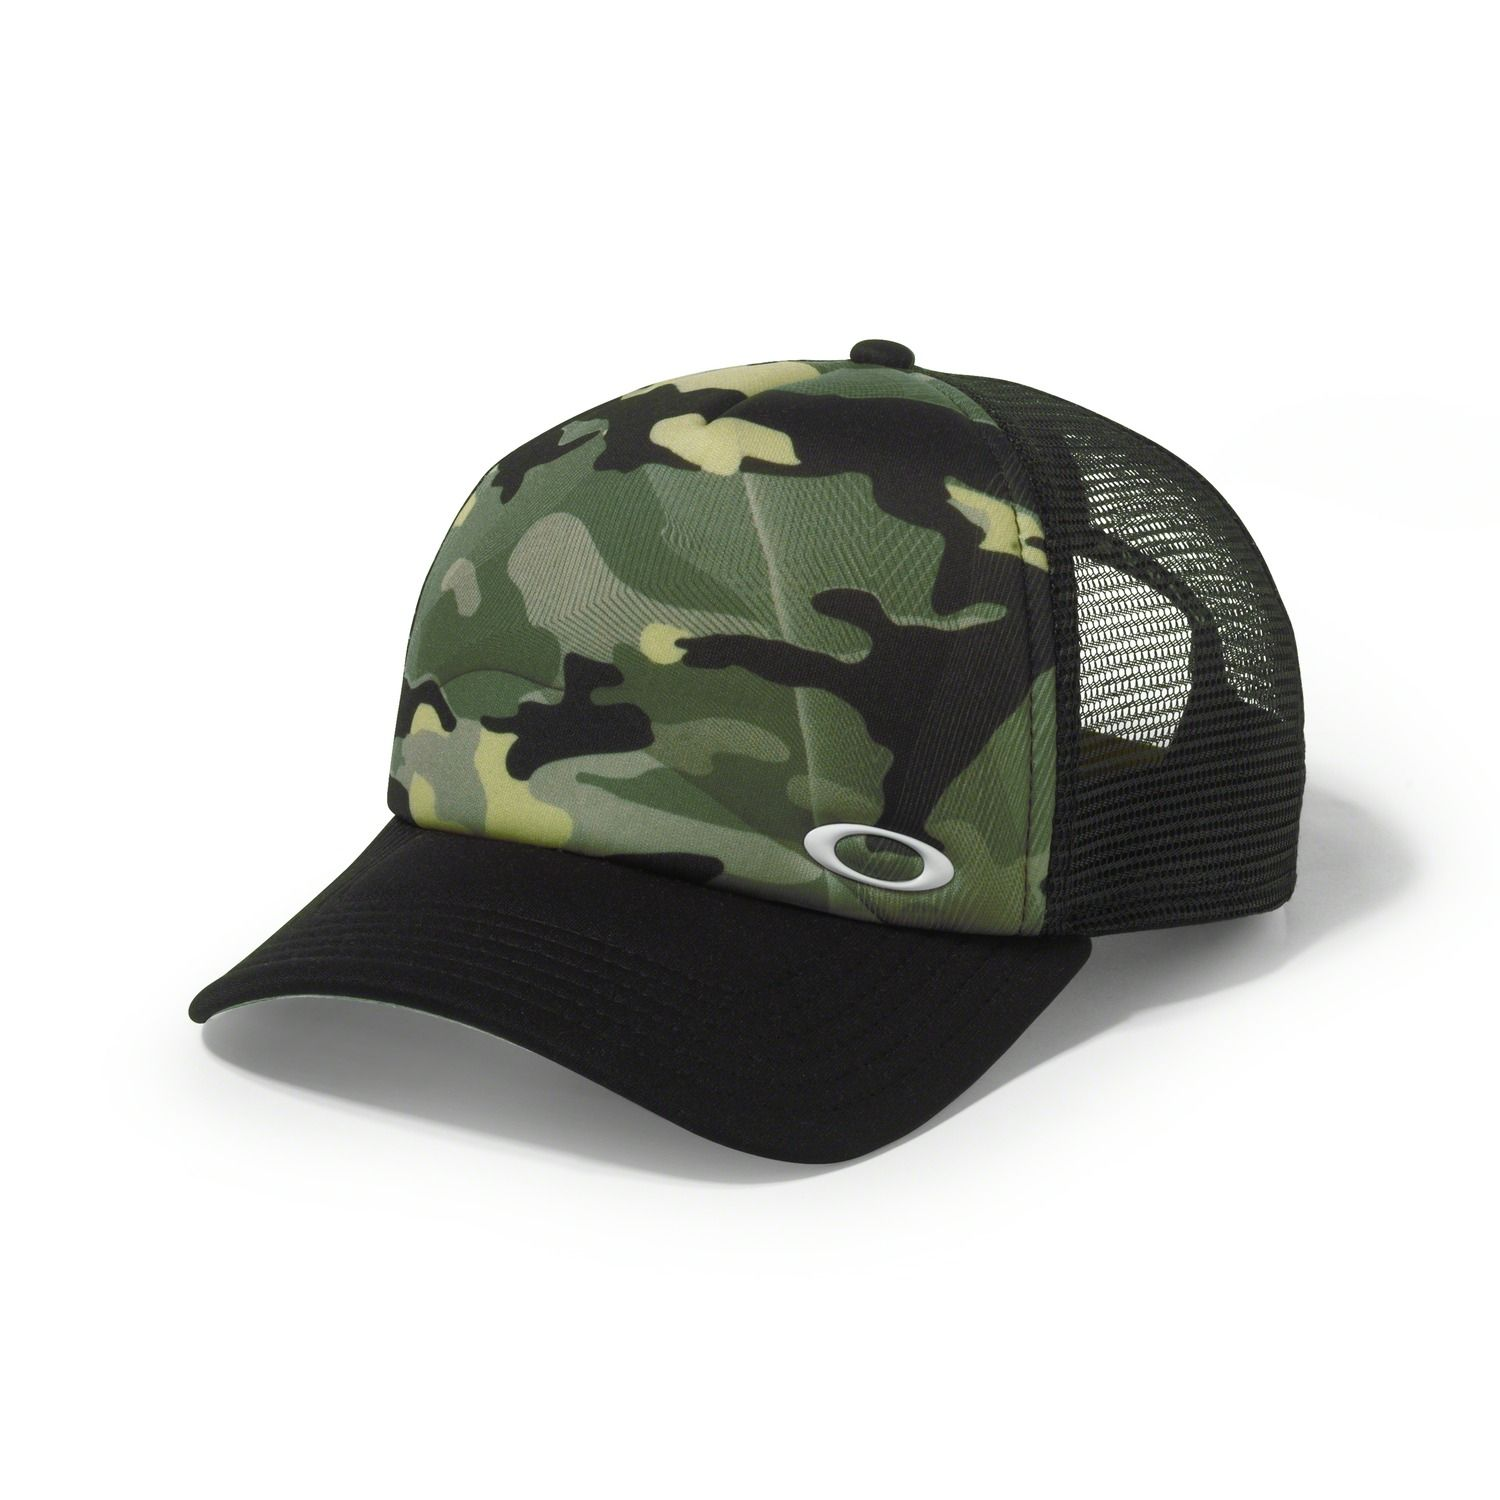 Sublimated Foam Trucker Hat - OLIVE CAMO  8e4fa542287